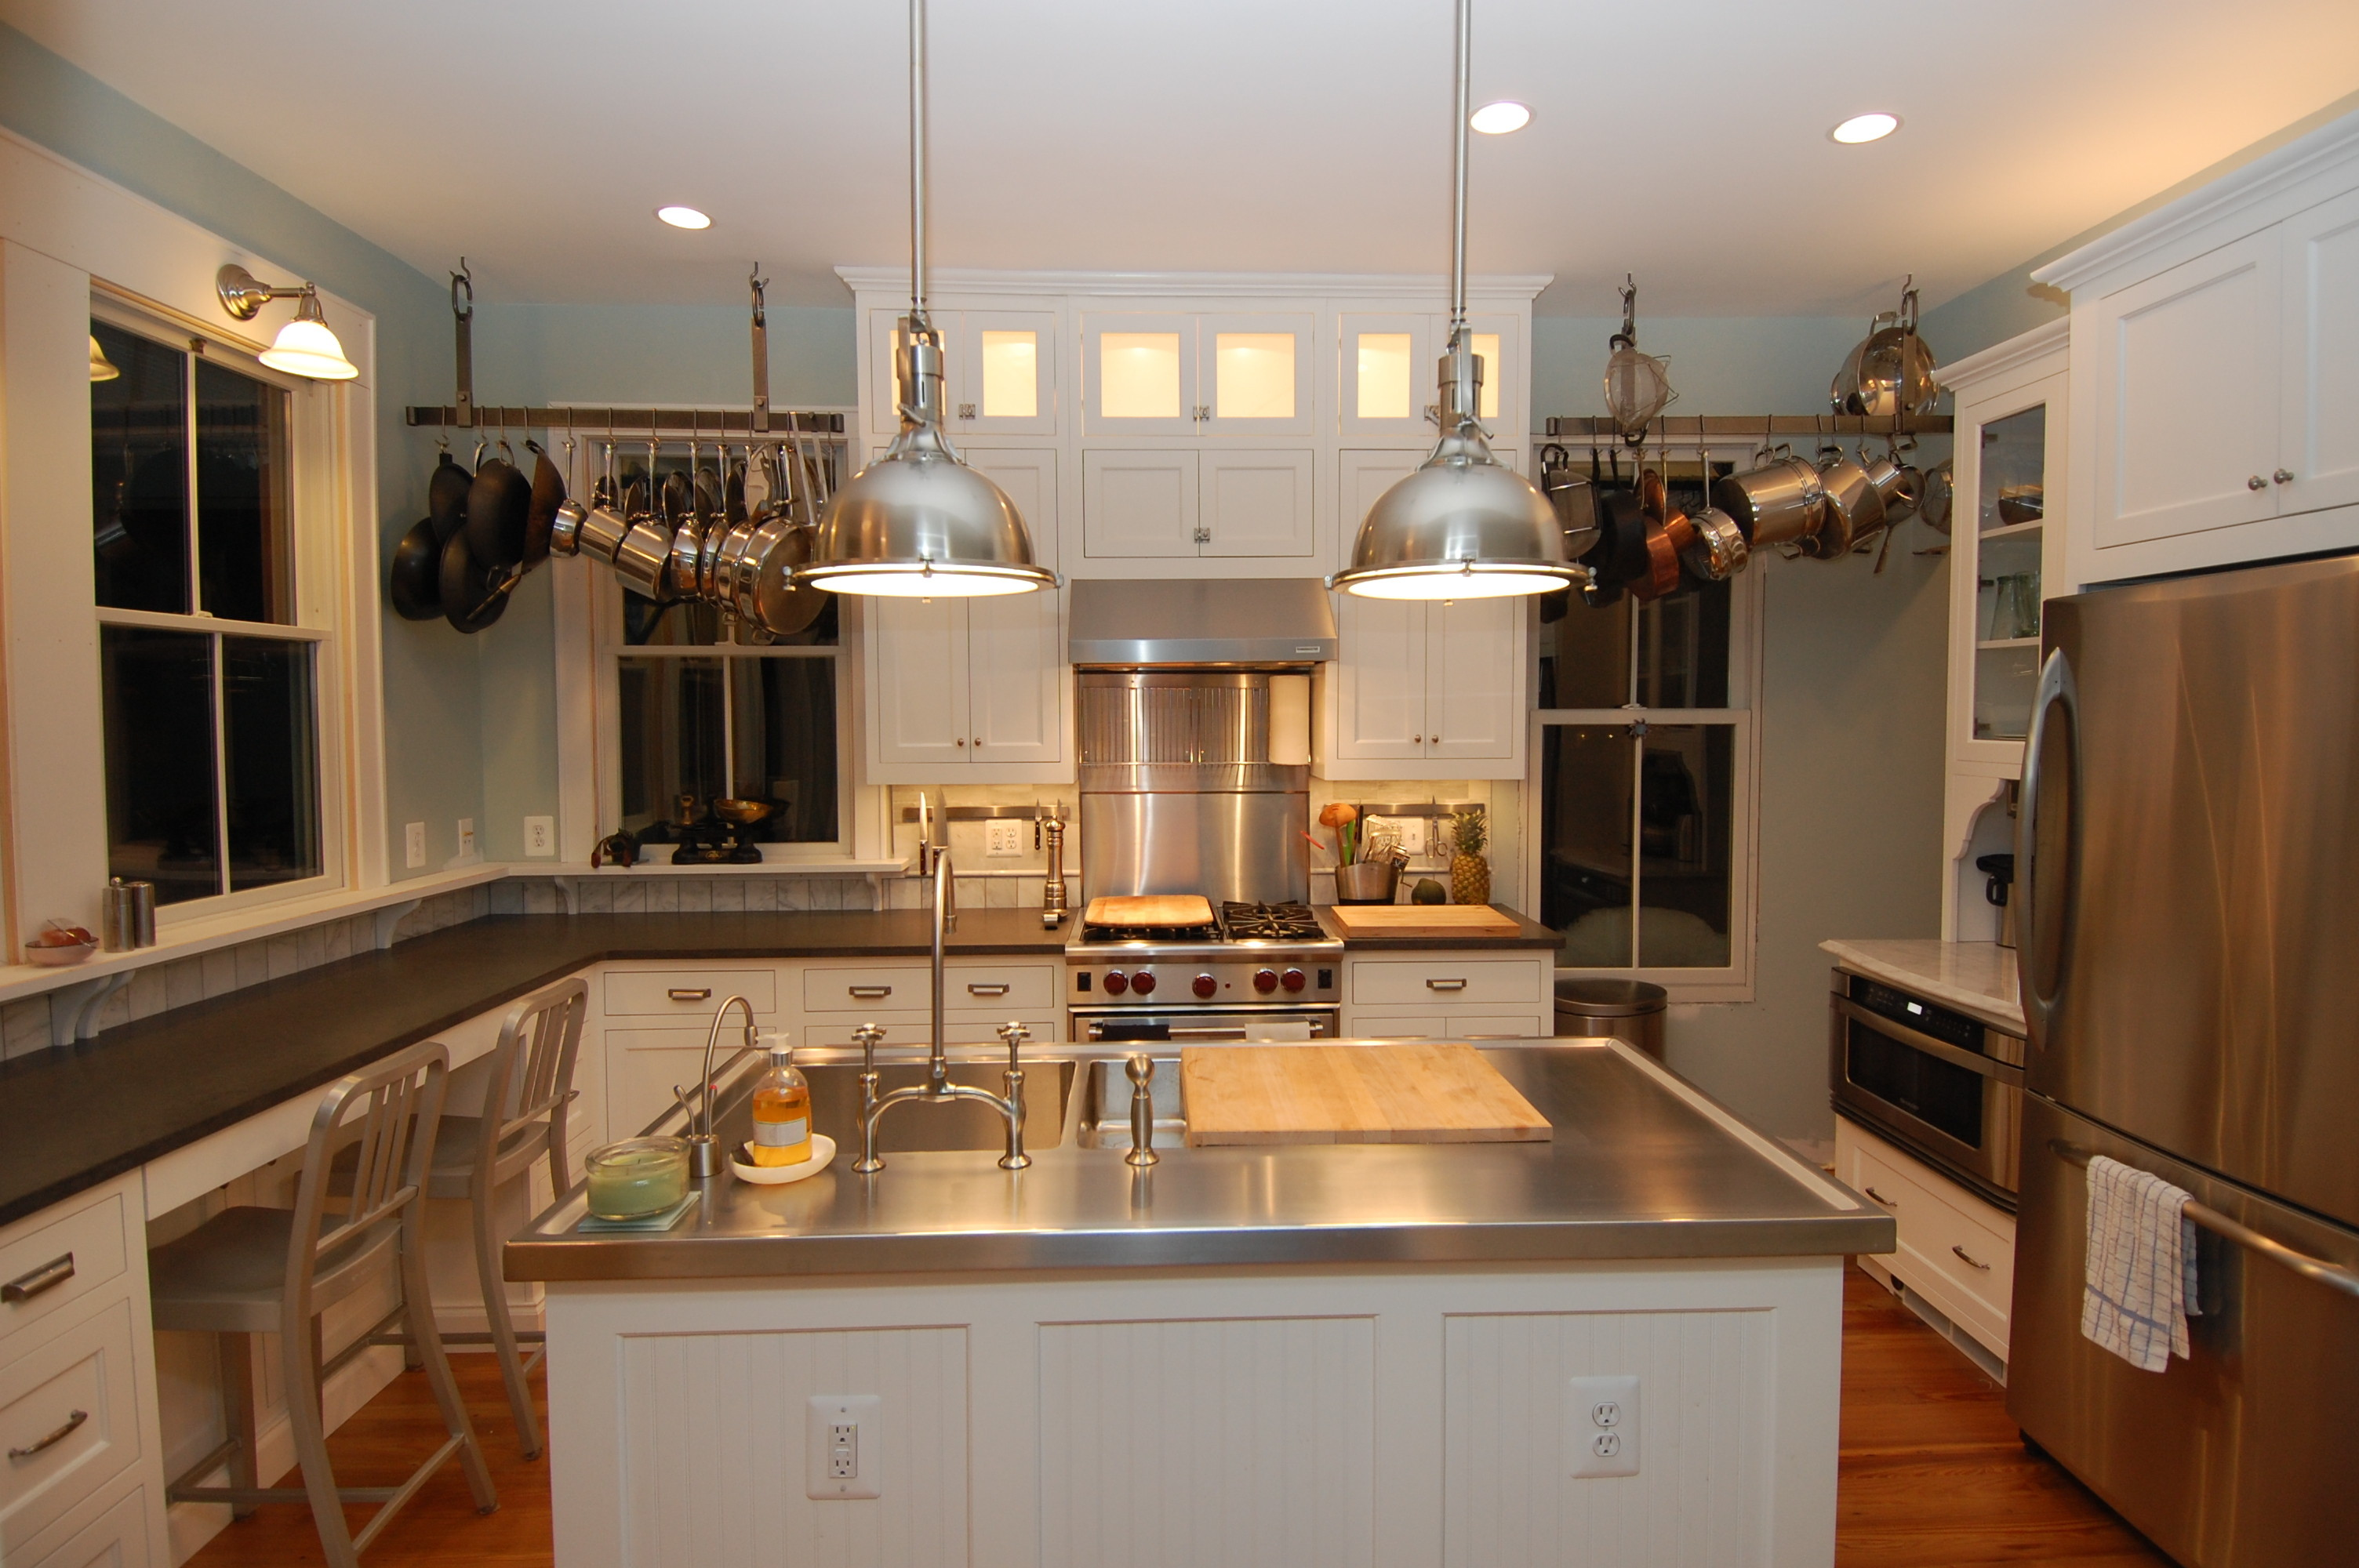 Cleaning Stainless Steel Countertops How To Clean Your Stainless Steel